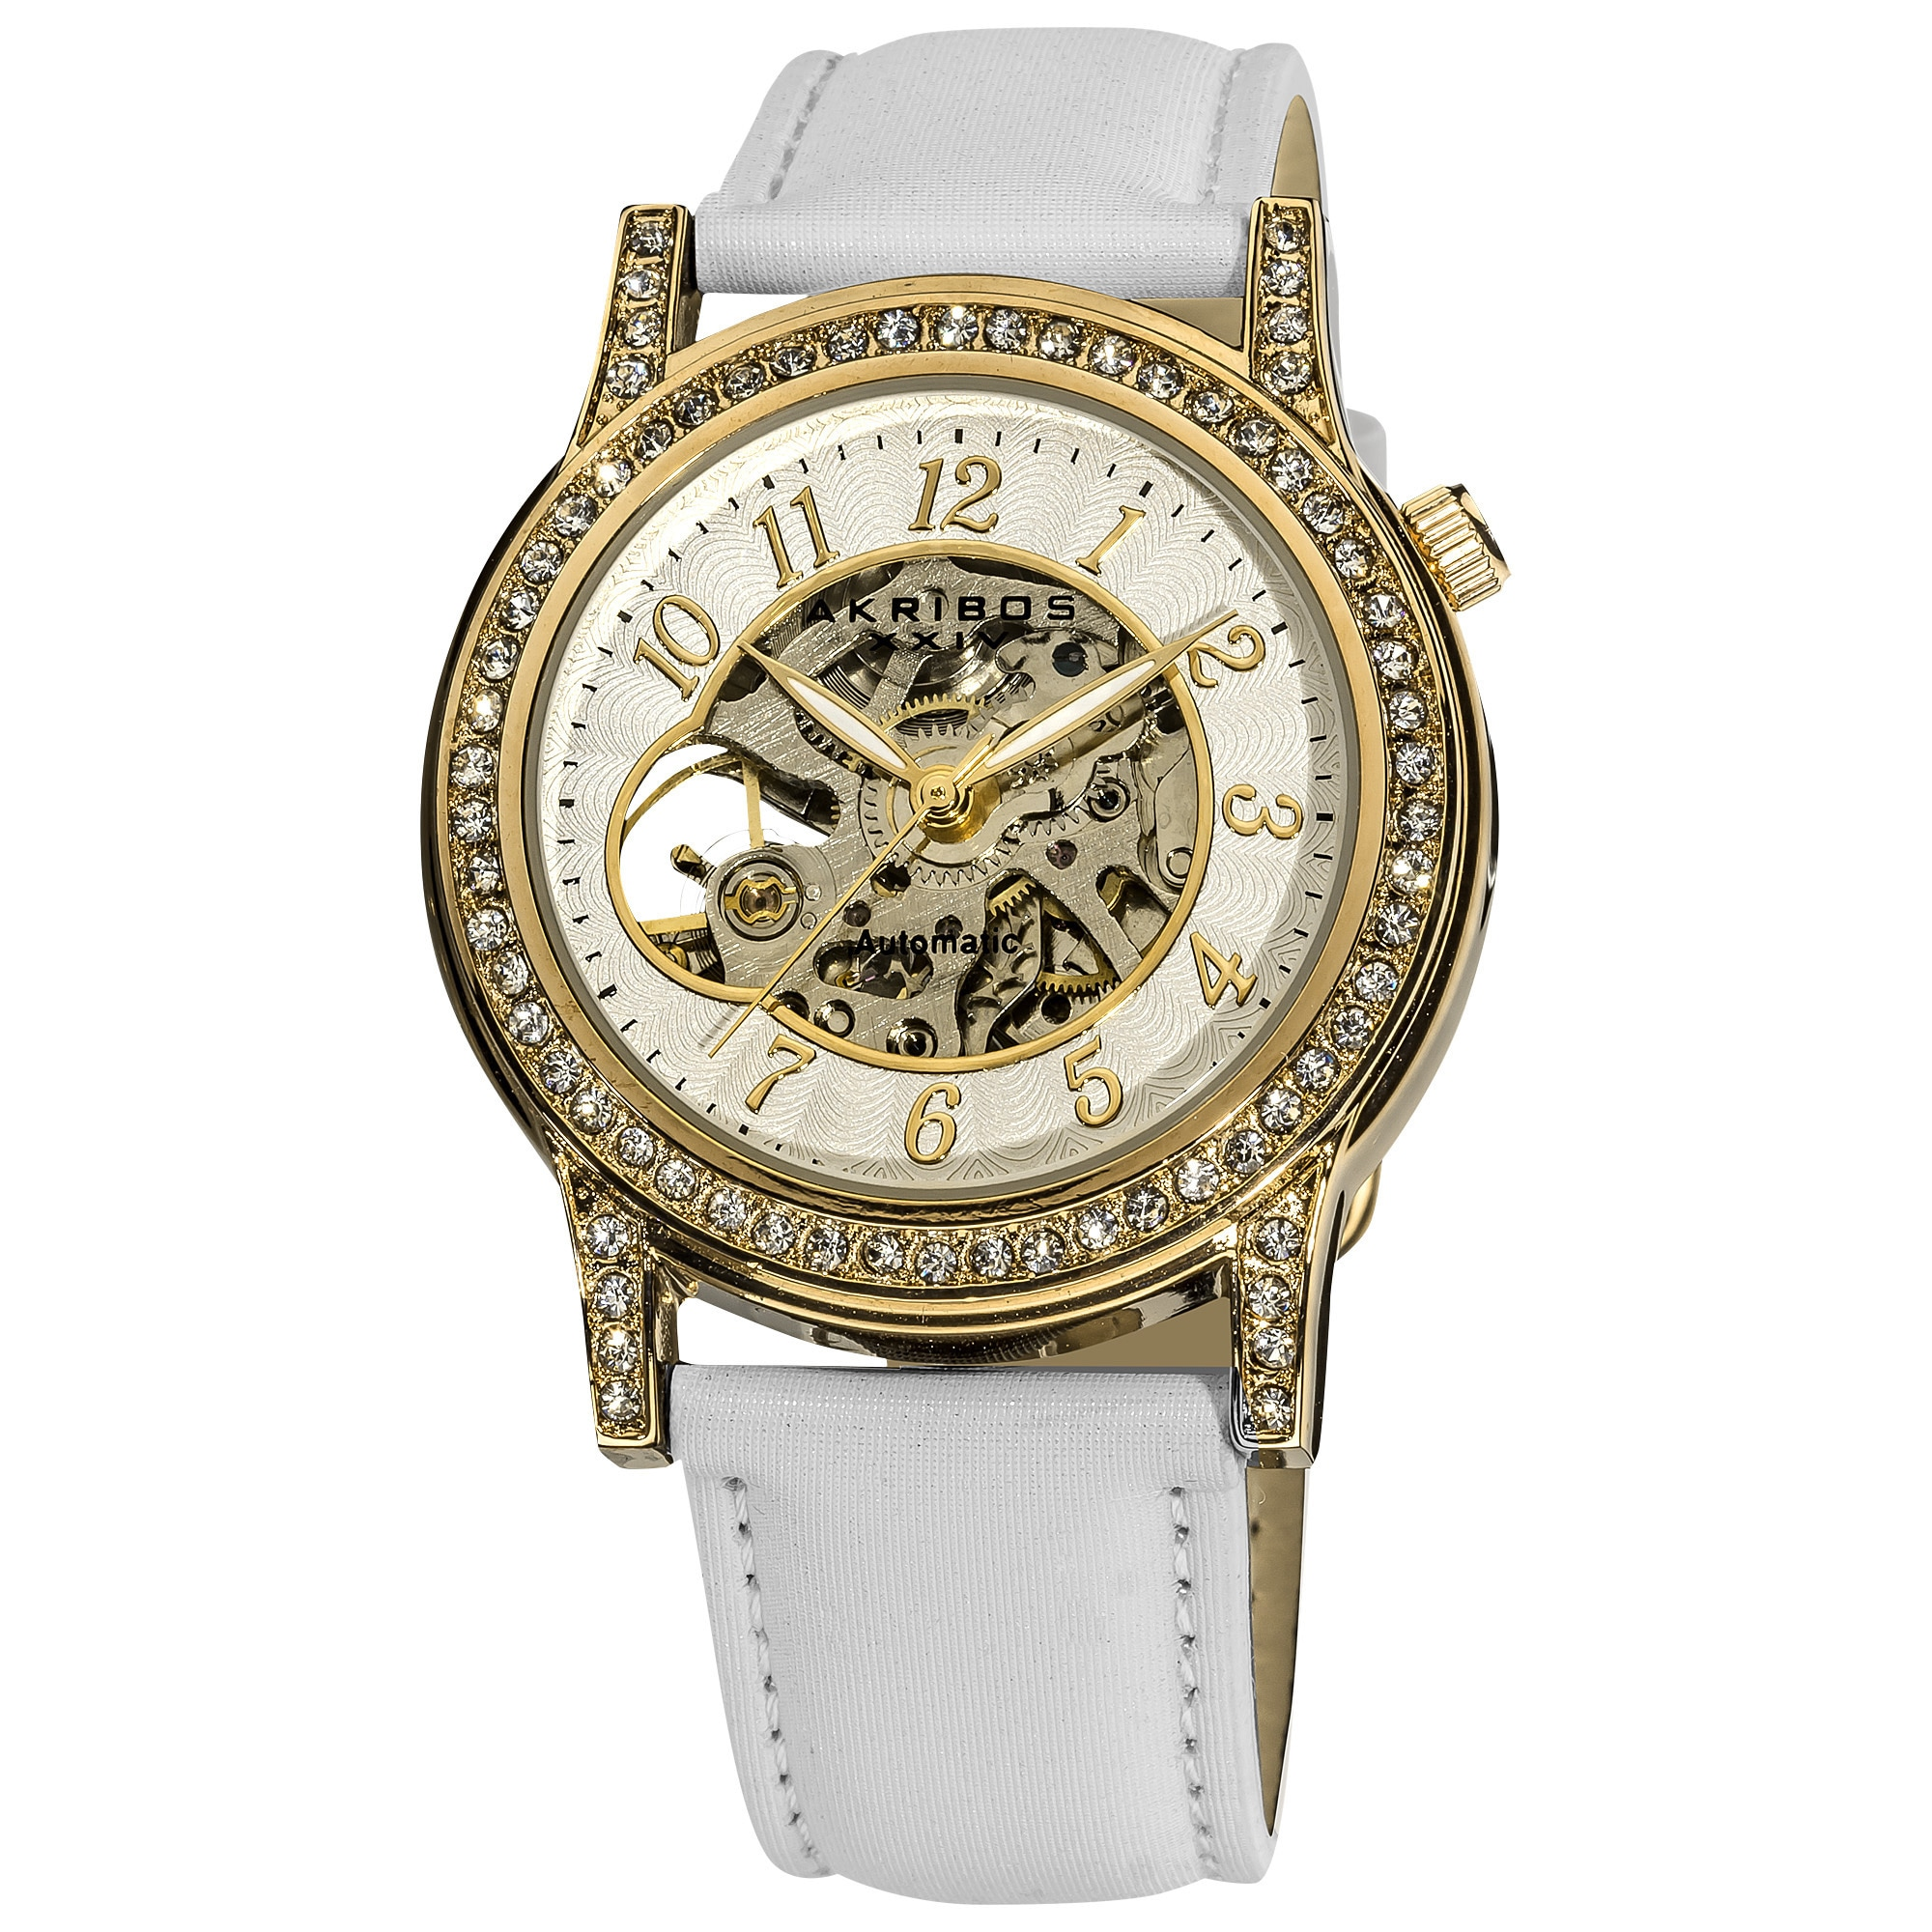 watch watches vodrich products silver davinci back leather vinci band da luxury genuine unisex